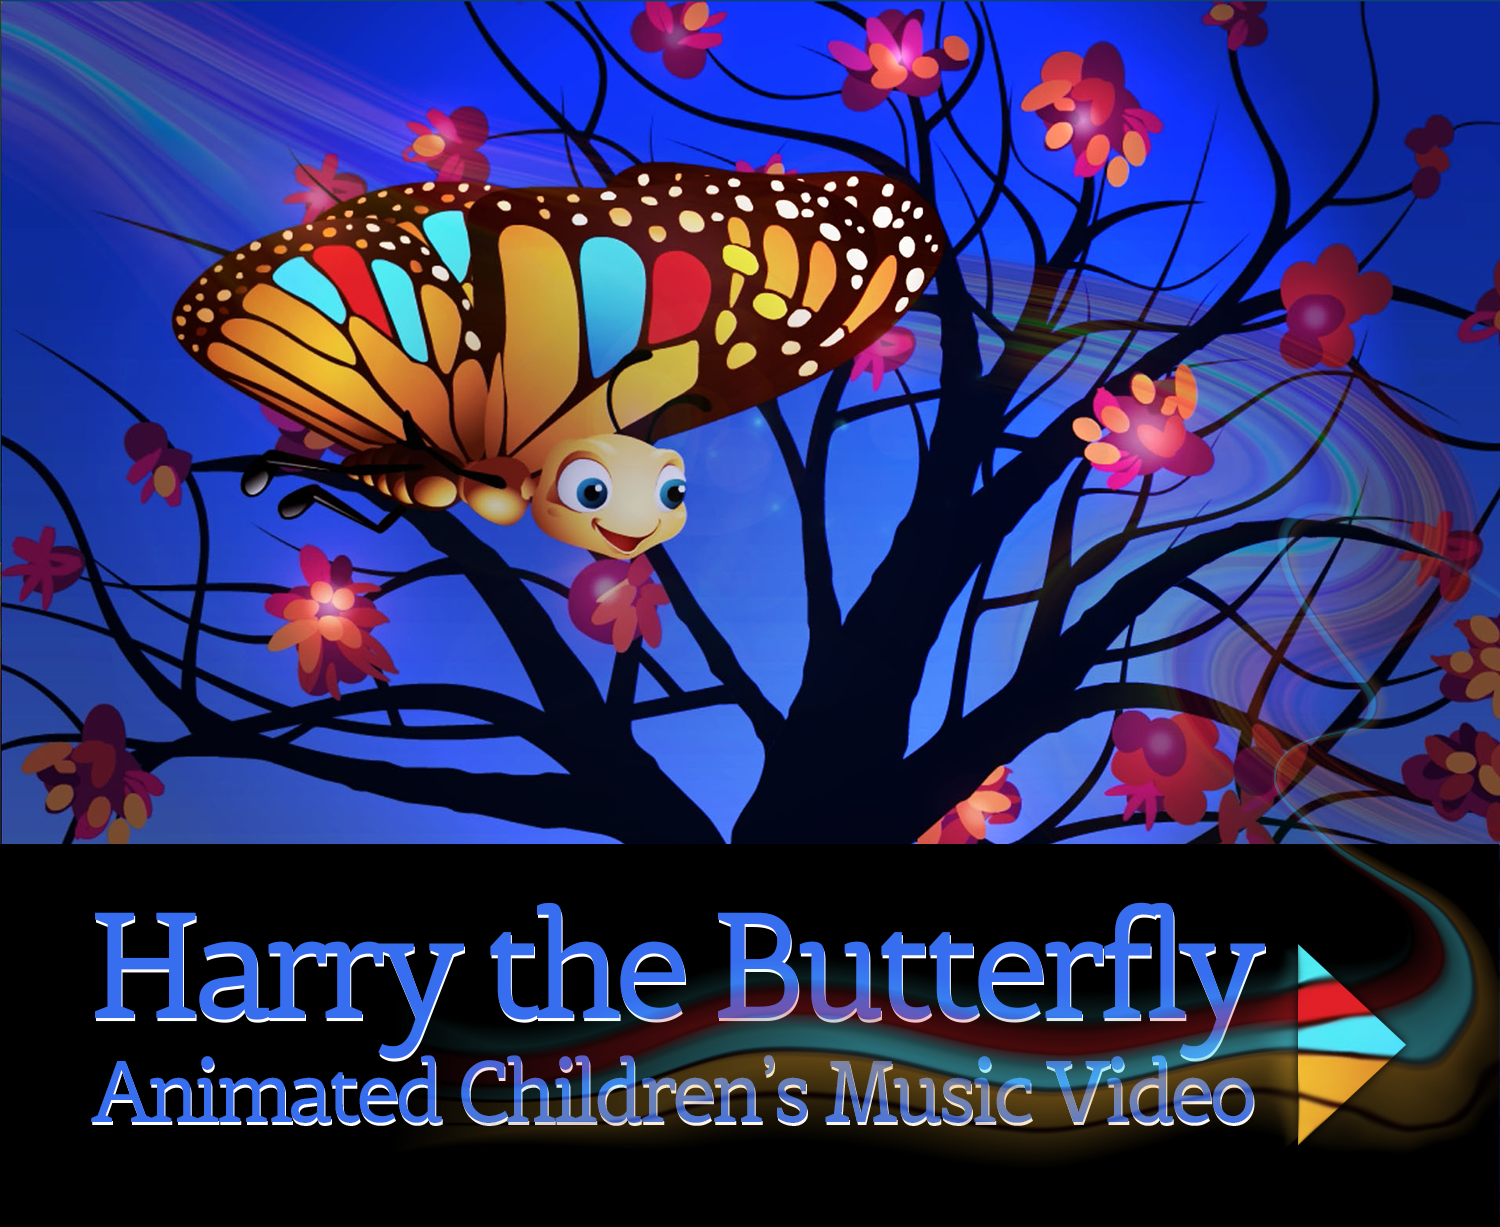 Children Animation Harry the Butterfly